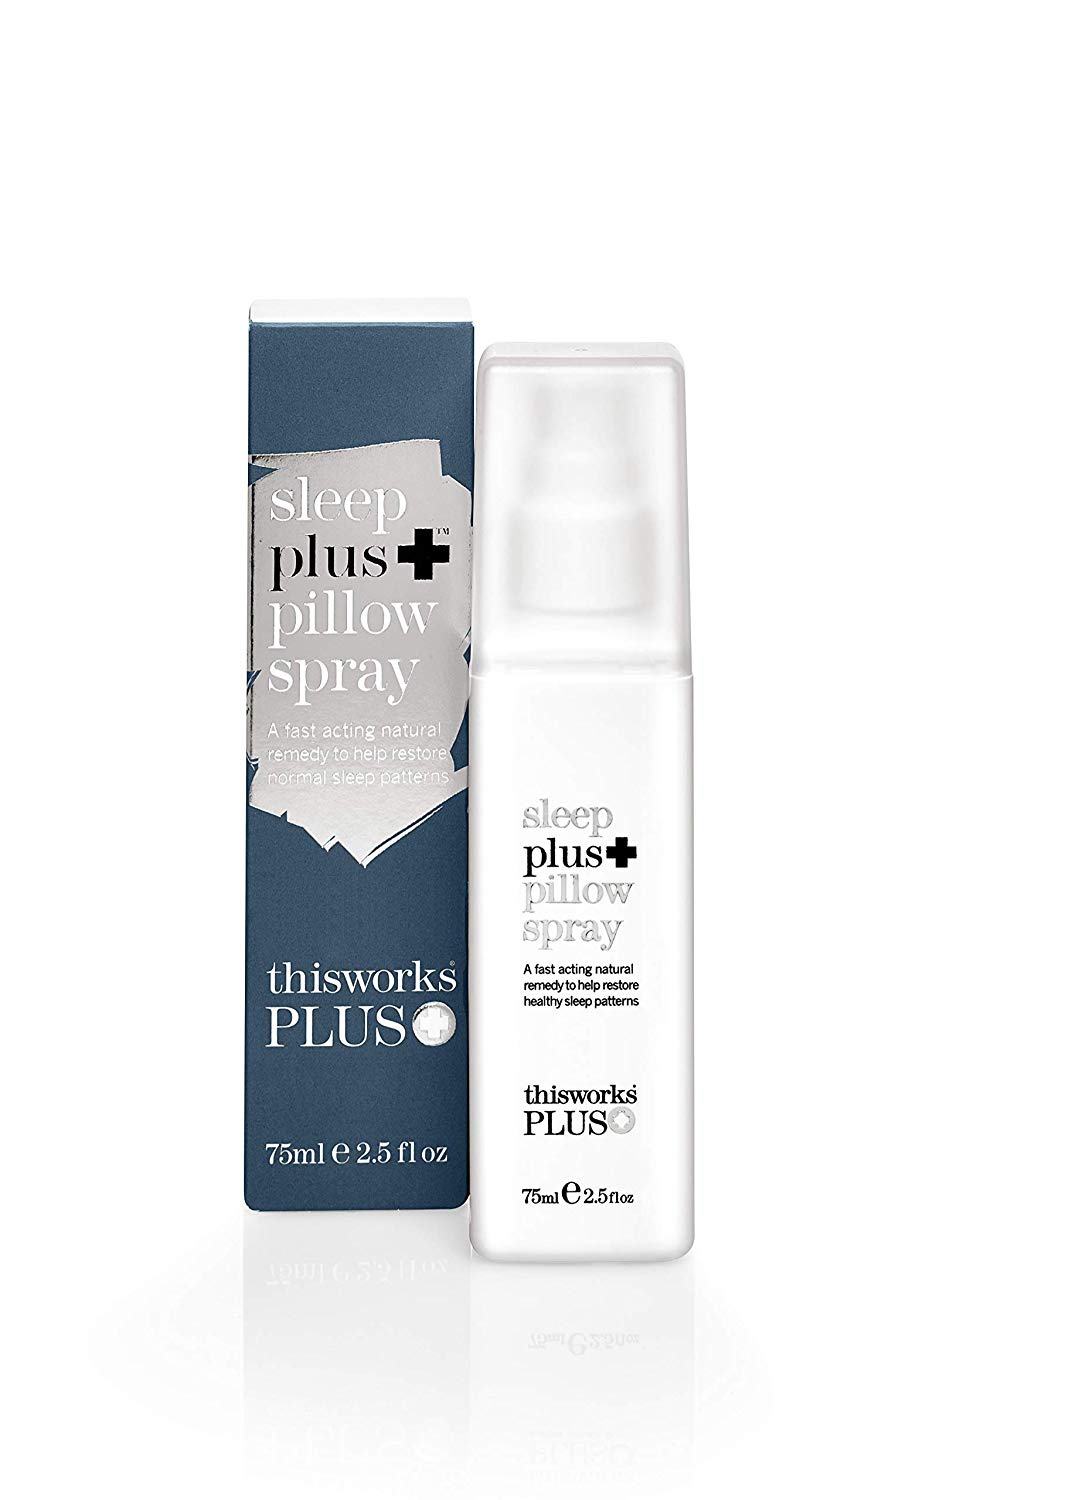 This Works pillow spray is being called